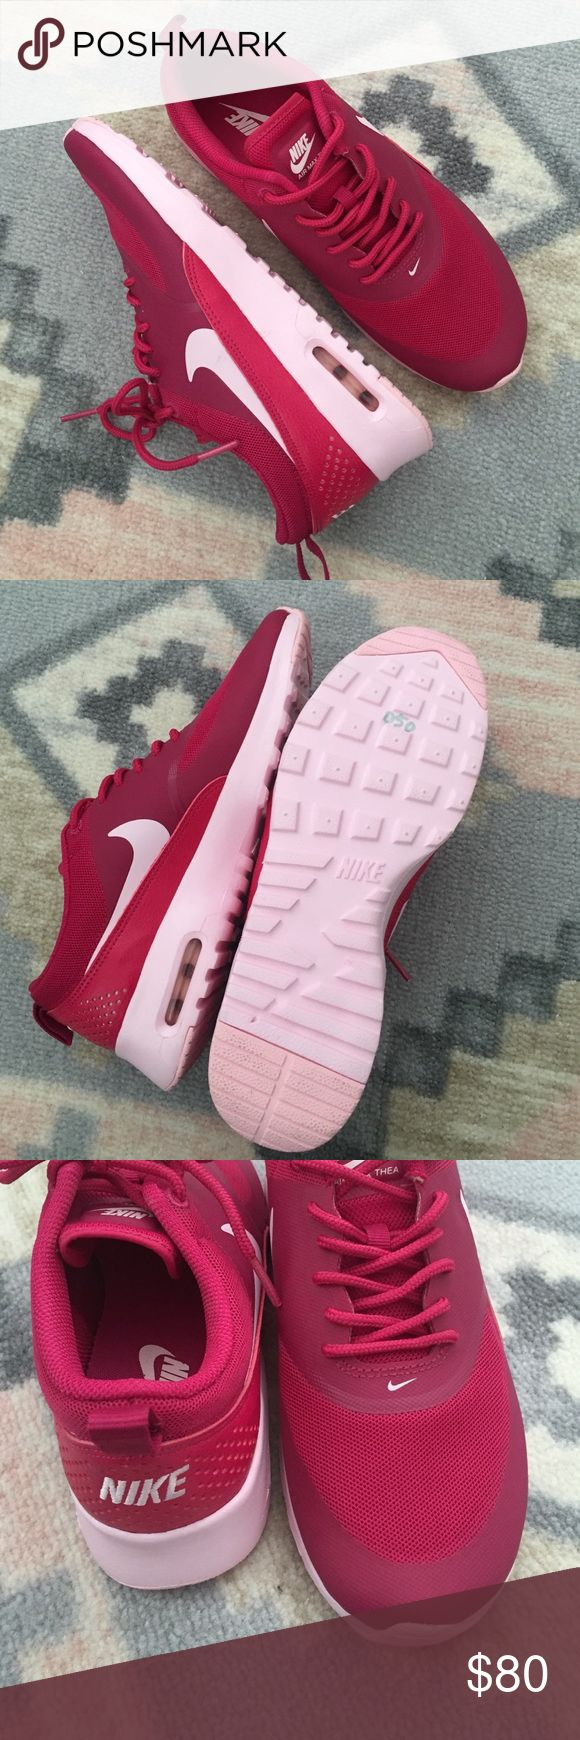 Shade of Pink Nike Air Max Brand new Nike Air Max Thea. Pink shoe with light pink sole- not white! Look at all the pictures and hopefully you can get a better idea of the colors. Never been worn, but they need to be...these are adorable!😍 Nike Shoes Sneakers